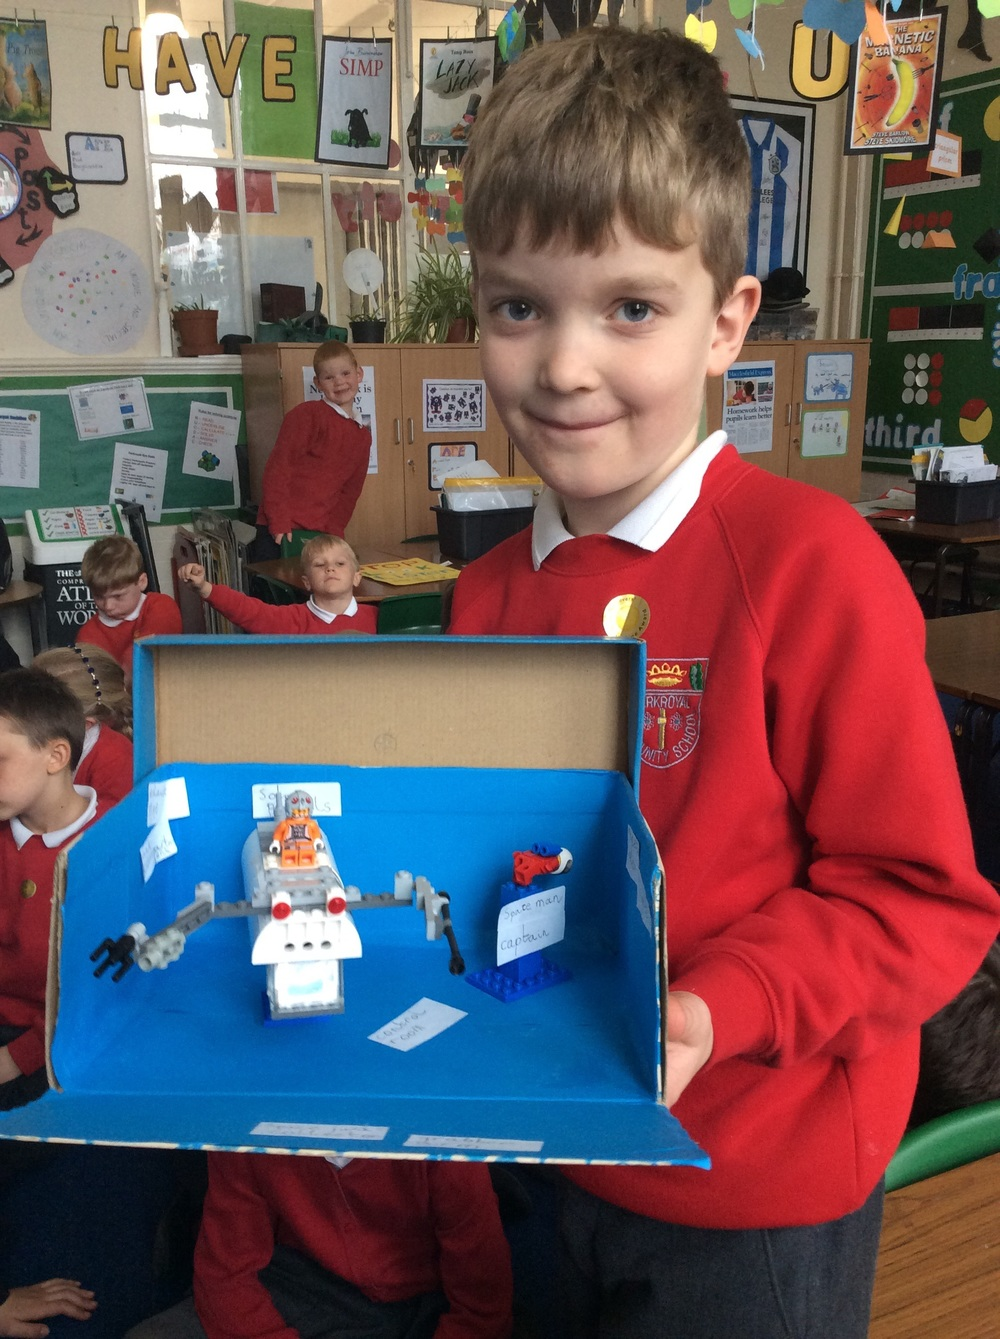 Jake's space vehicle will collect rocket debris with its grabber arm...